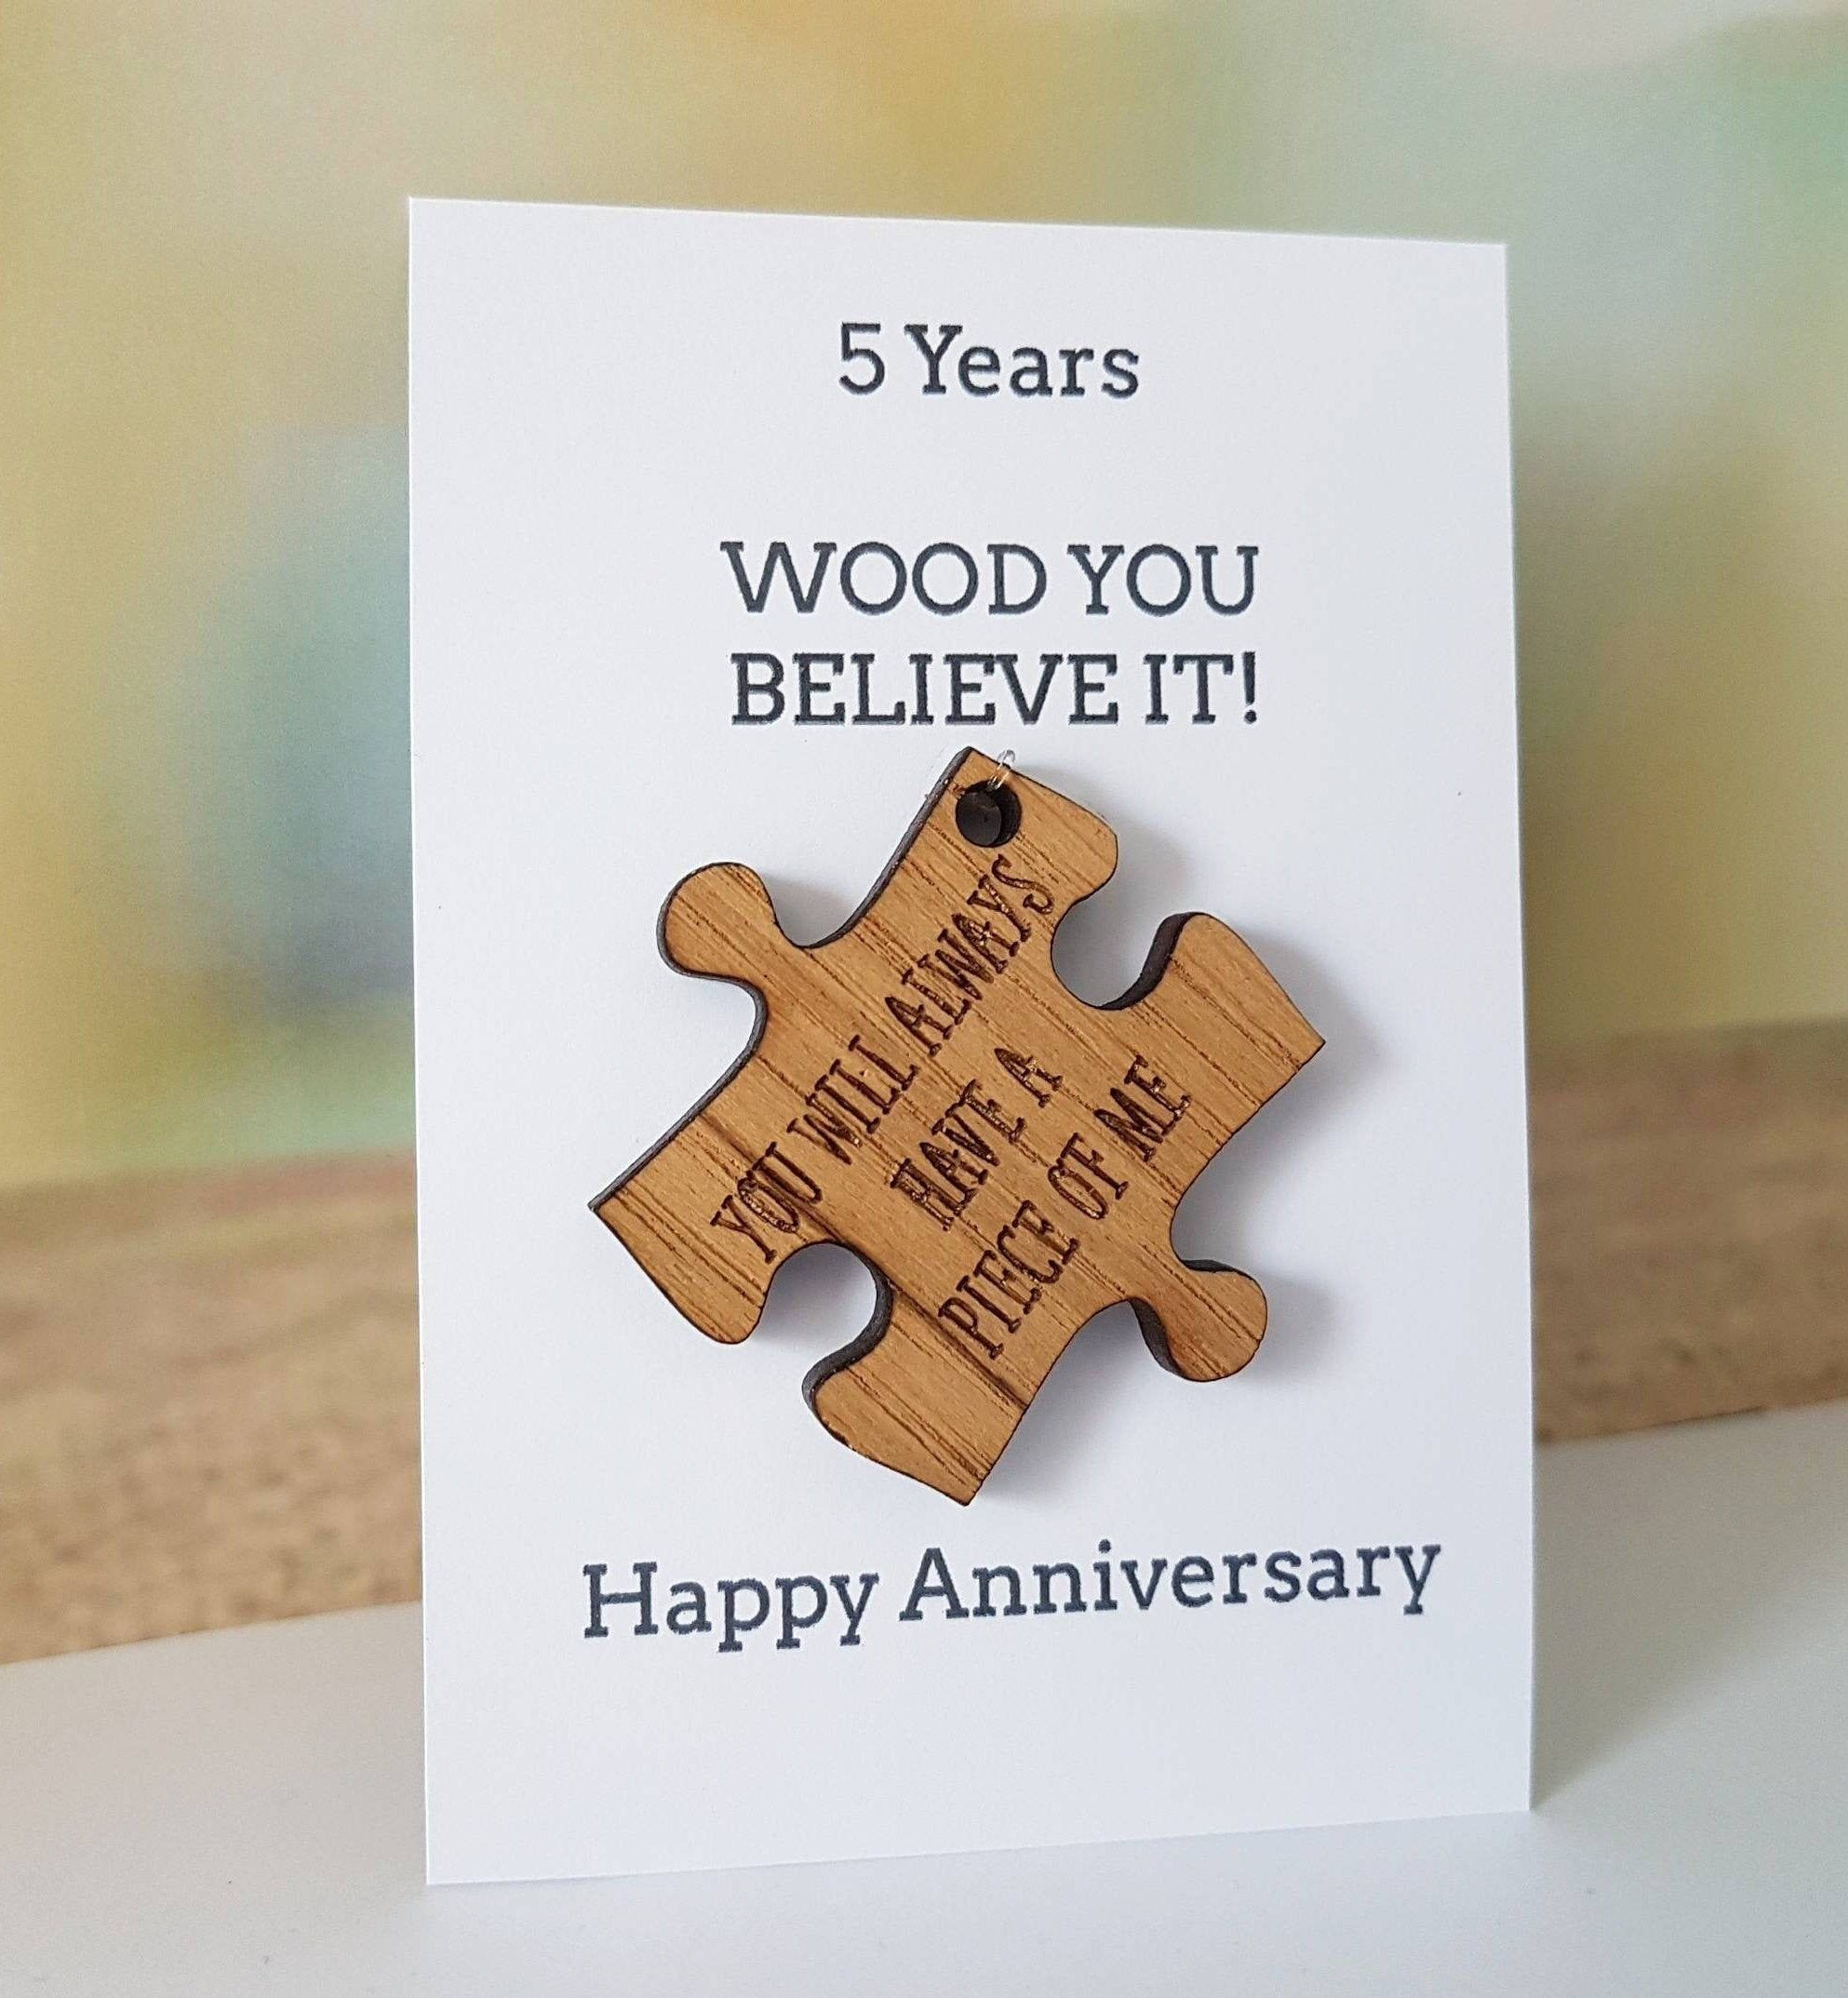 5th Anniversary Gift Husbandgift Wife Card Wood Wooden Gift Wedding Anniversary Gift For Her Gift For Him Romantic I Love You In 2020 Wooden Anniversary Gift Wood Anniversary Gift Anniversary Cards